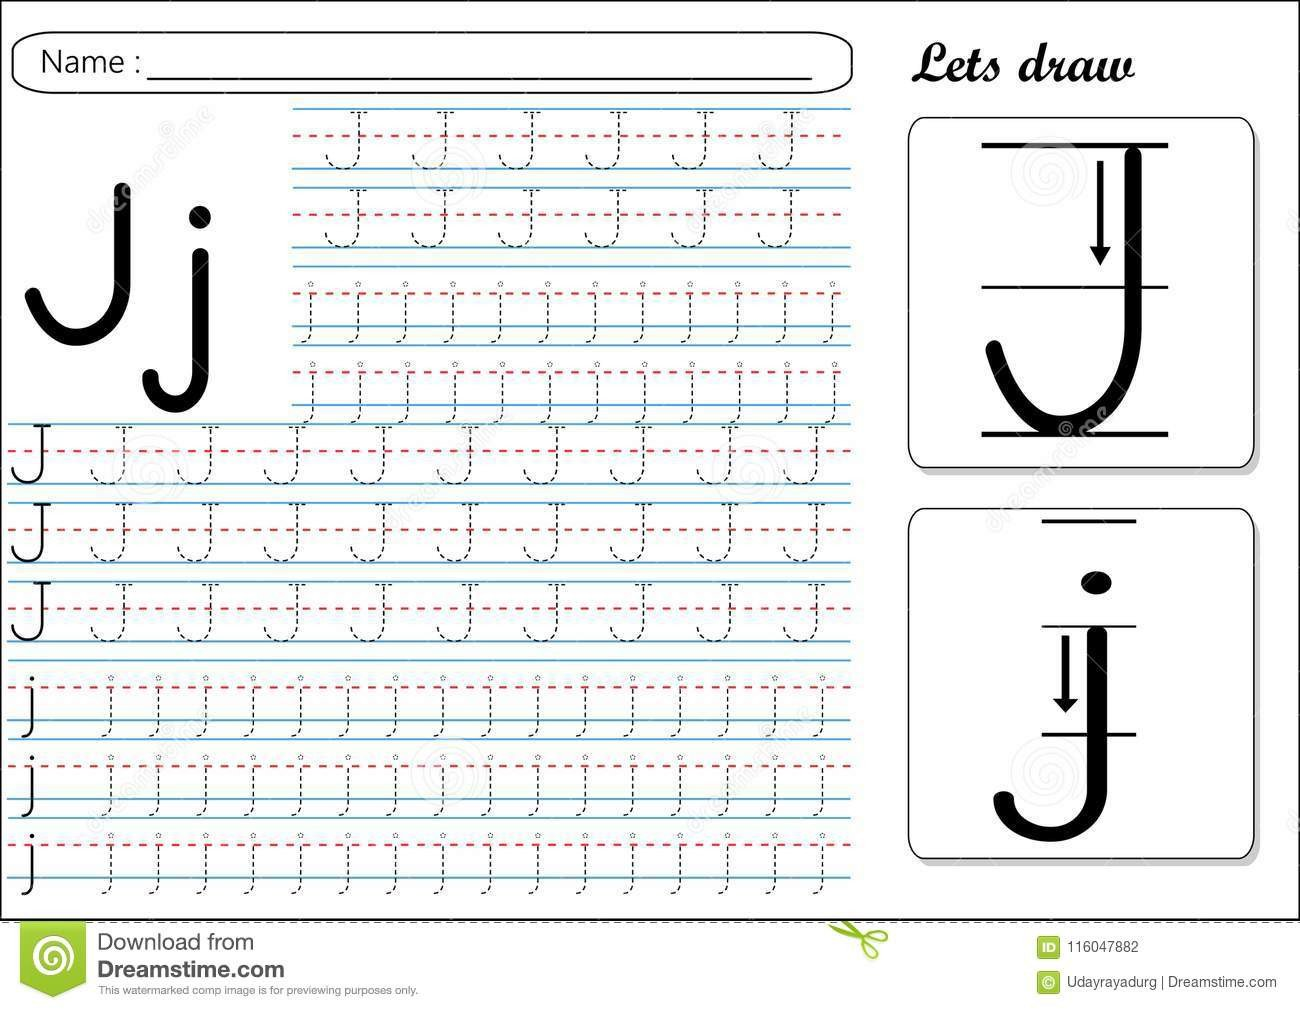 tracing worksheet jj alphabet tracing made easy kids to improve their handwriting skills worksheet will help kids to